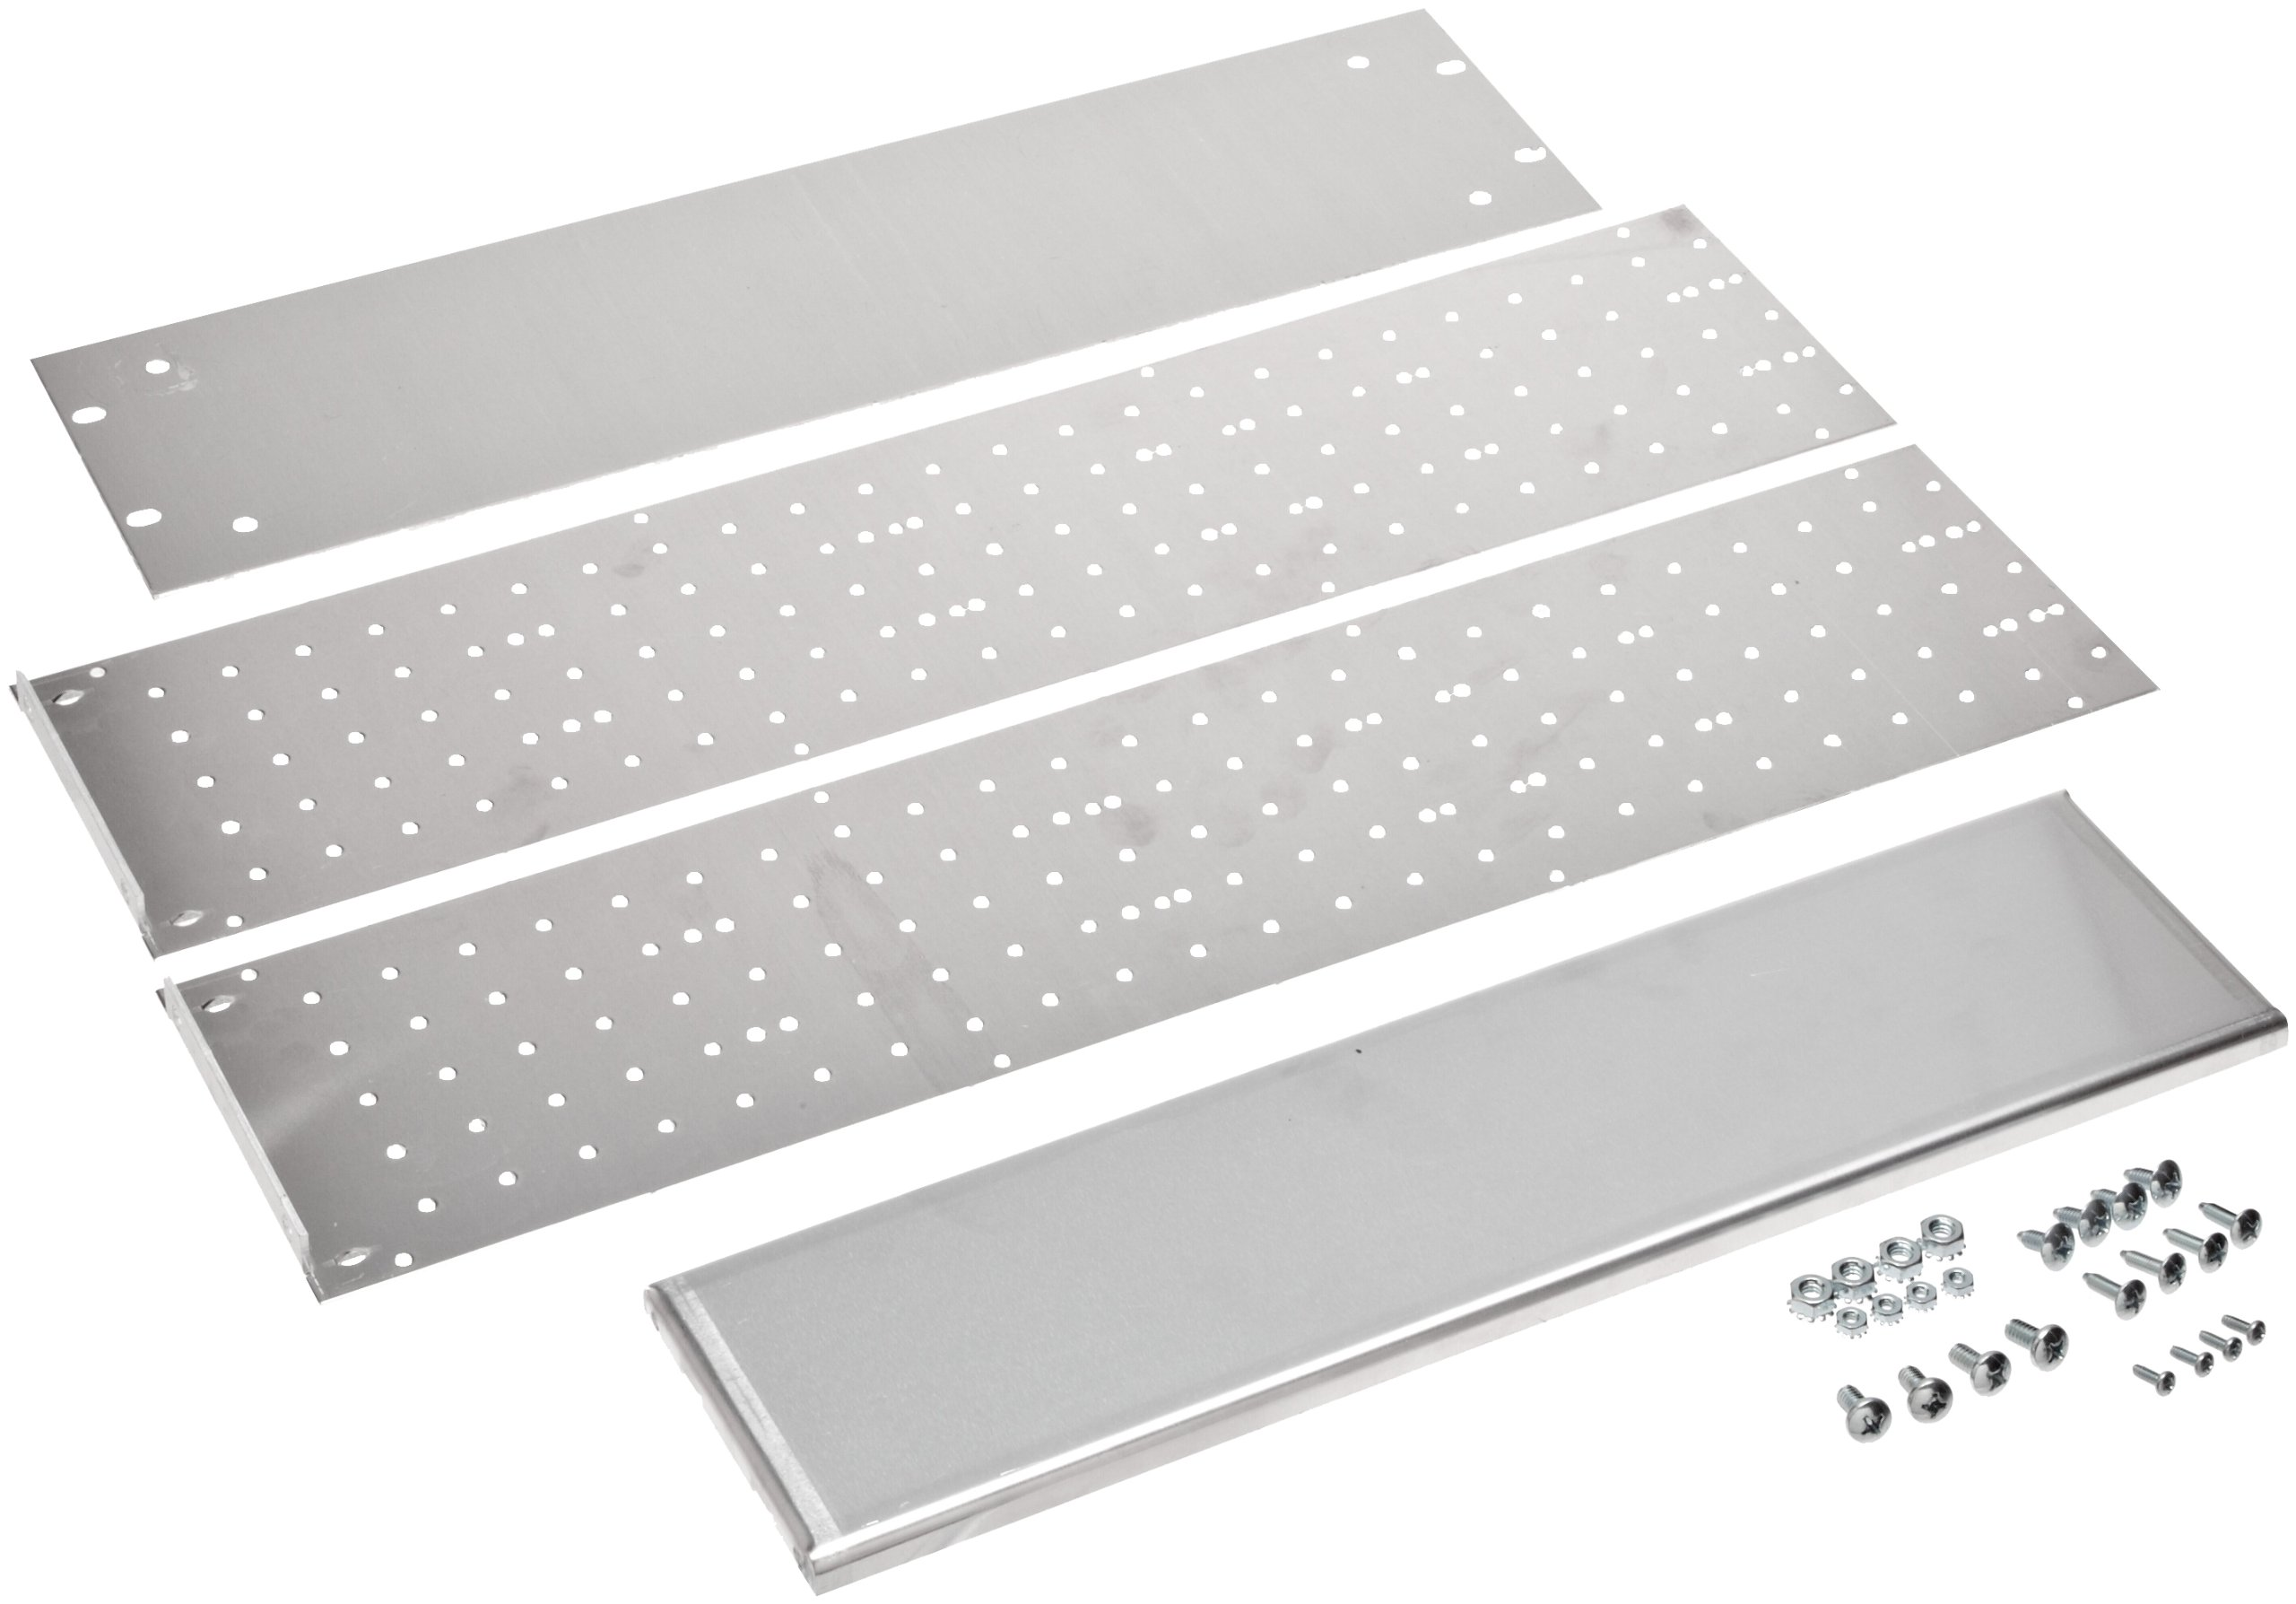 BUD Industries RM-14222 Aluminum Rackmount Chassis, 19'' Width x 5-1/4'' Height x 22'' Depth, Natural Finish